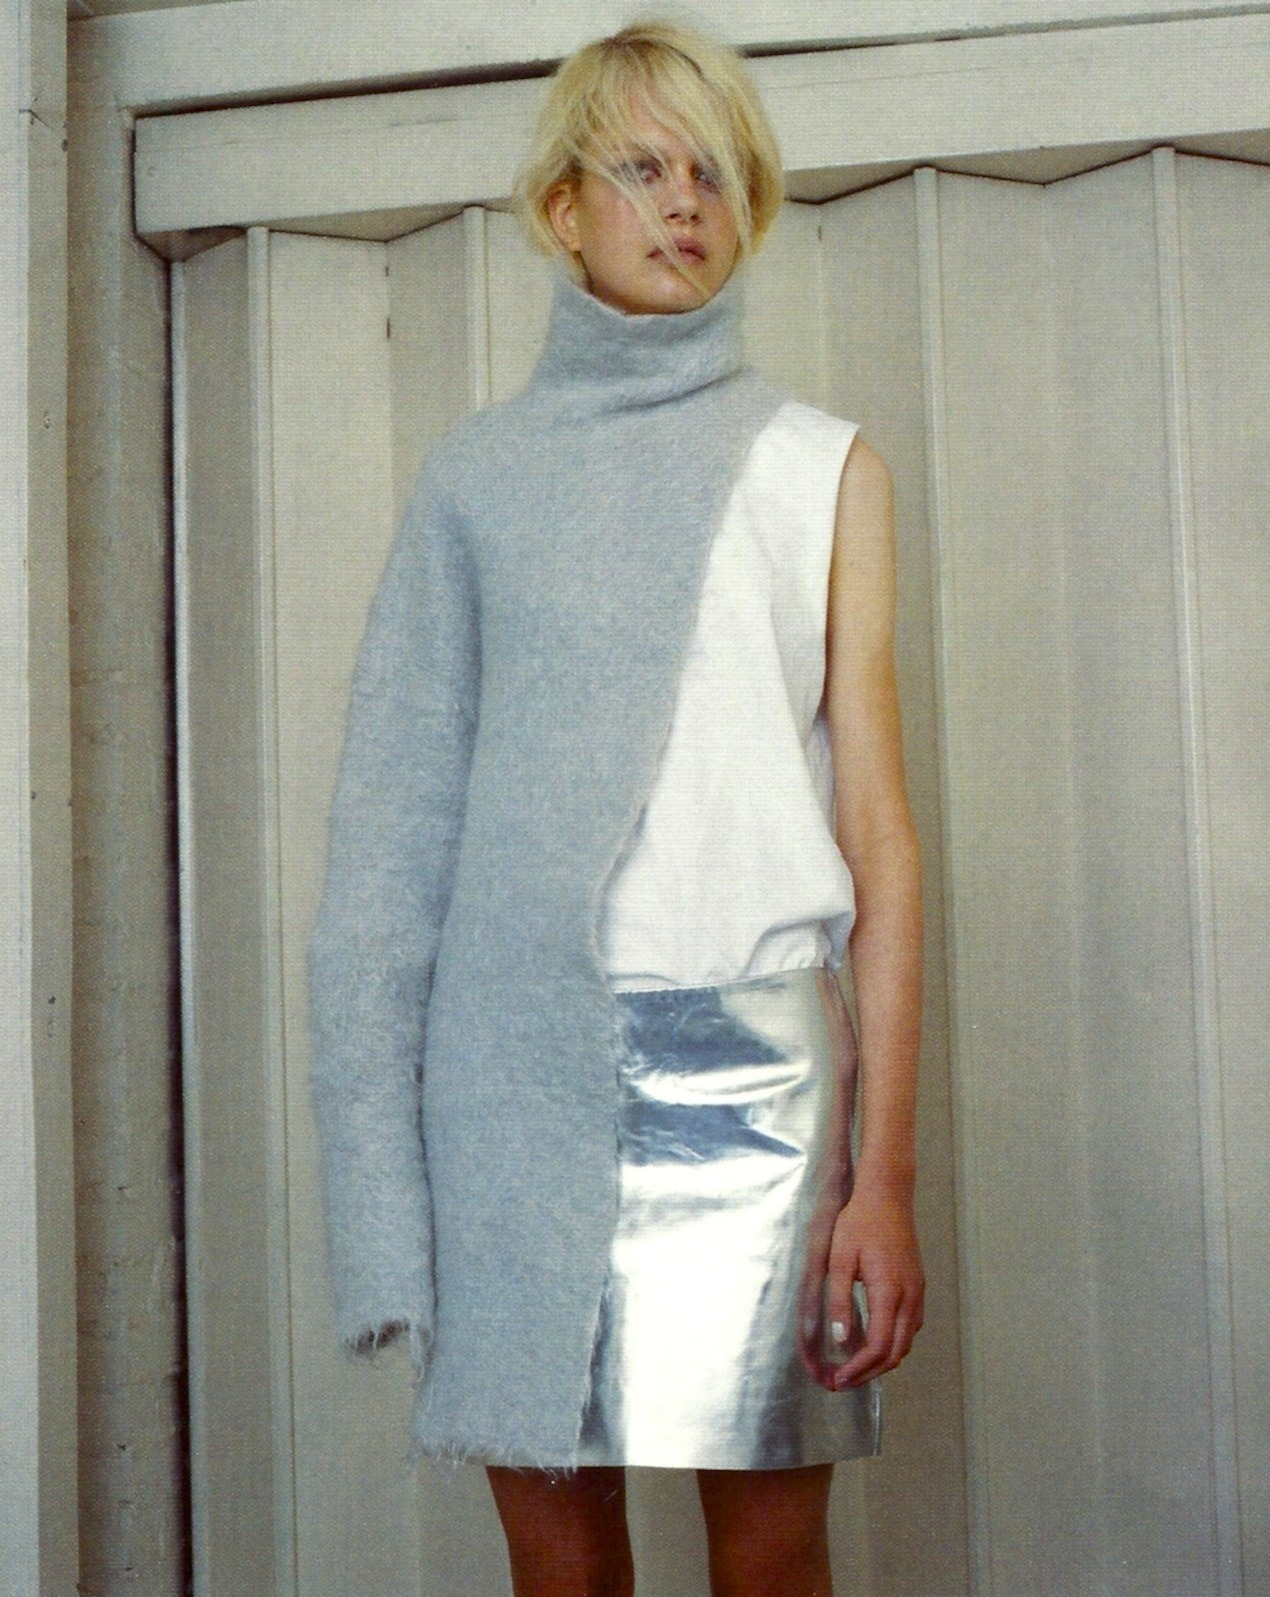 """United""SSAW, fall/winter 2012Caroline Schurch by Yann FaucherMarques'Almeida sweater, Sunspel t-shirt, Simone Rocha skirt"